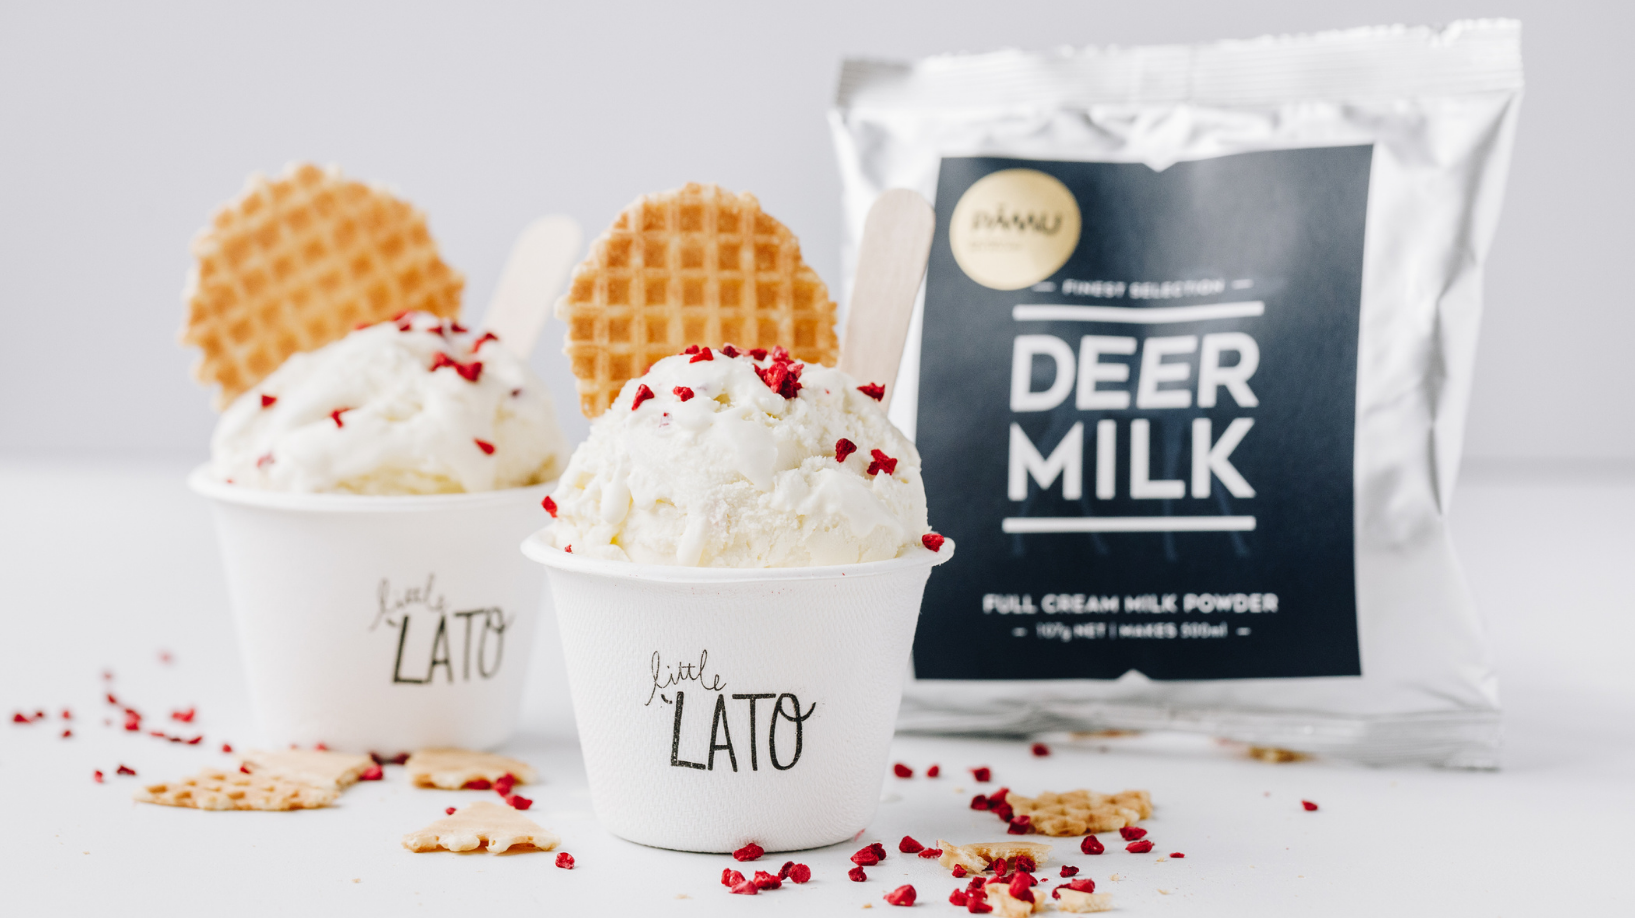 Little Lato and Pāmu team up with a Deerlicious Gelato for Christmas